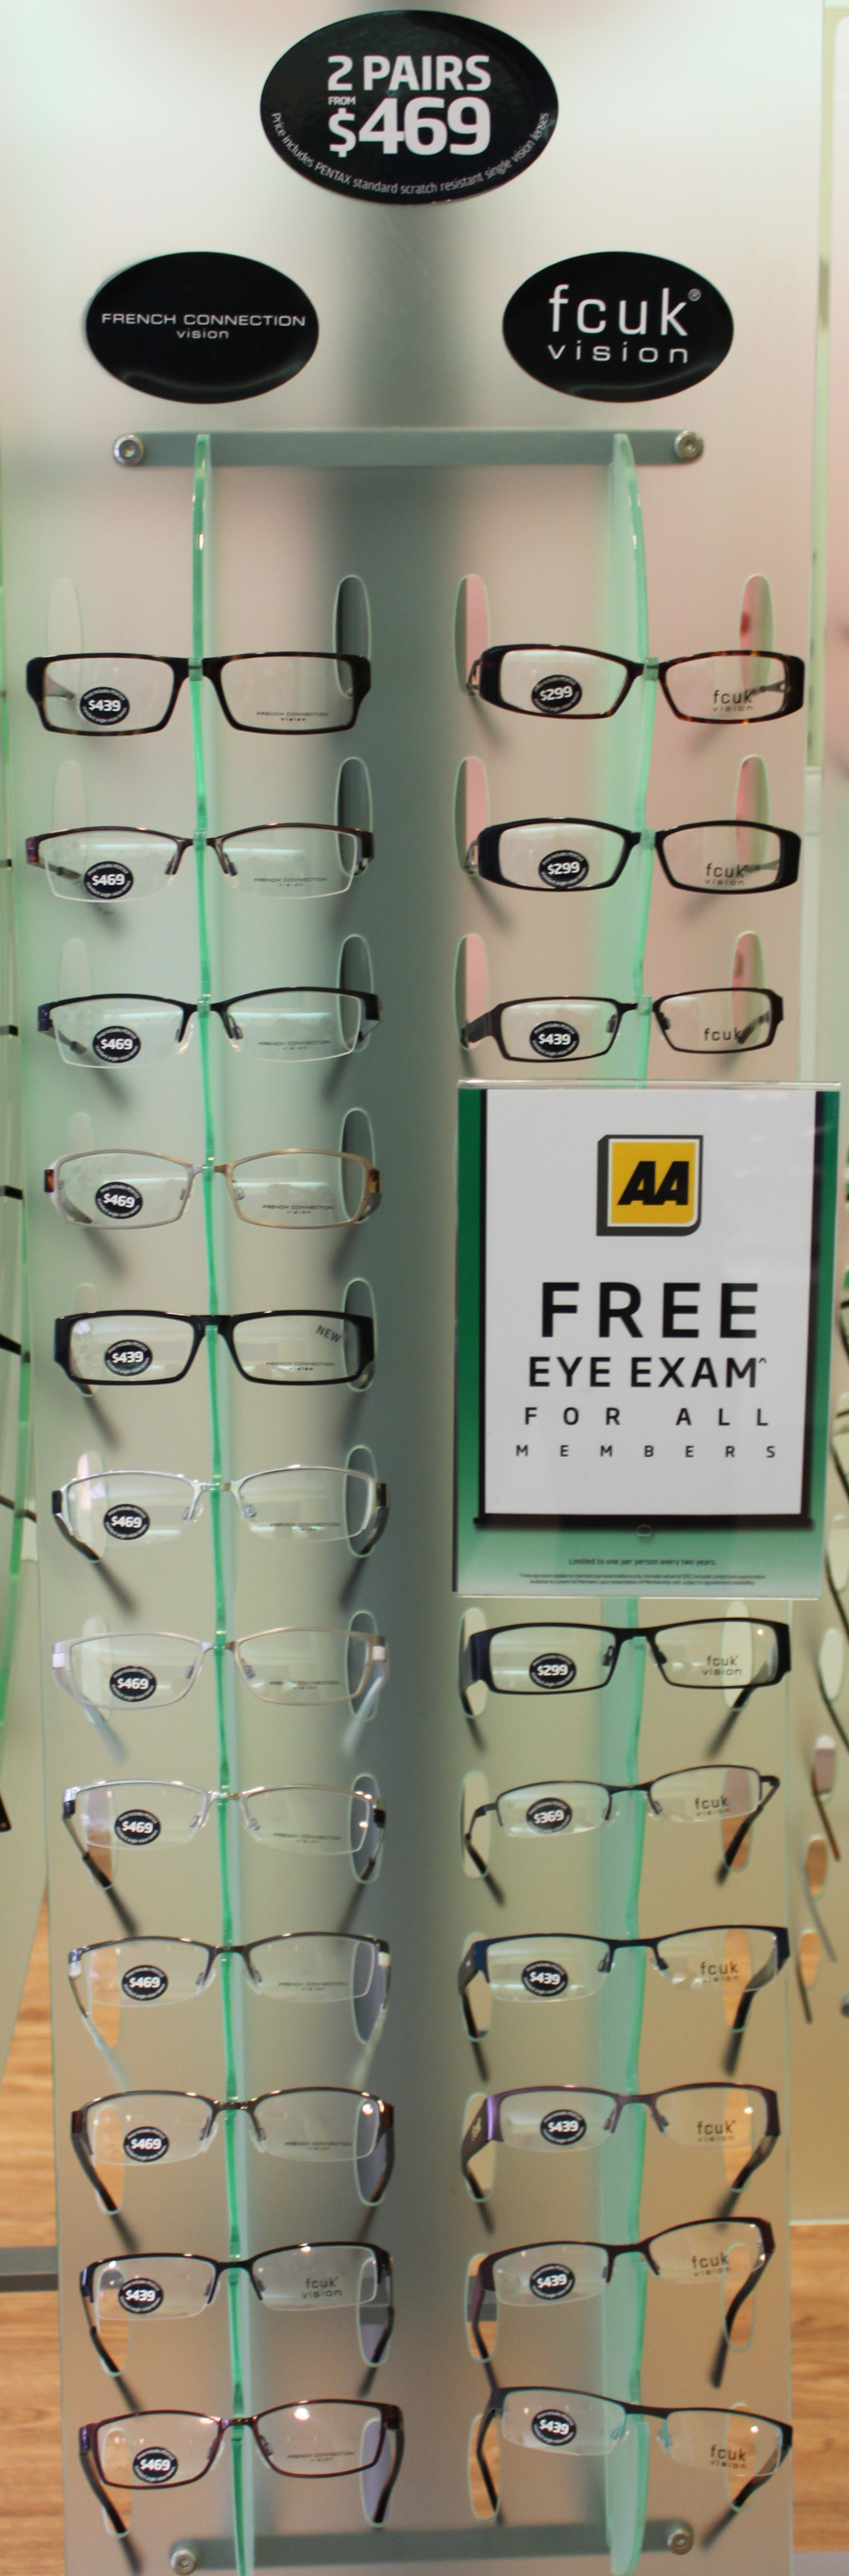 Specsavers Optometrists - Newmarket